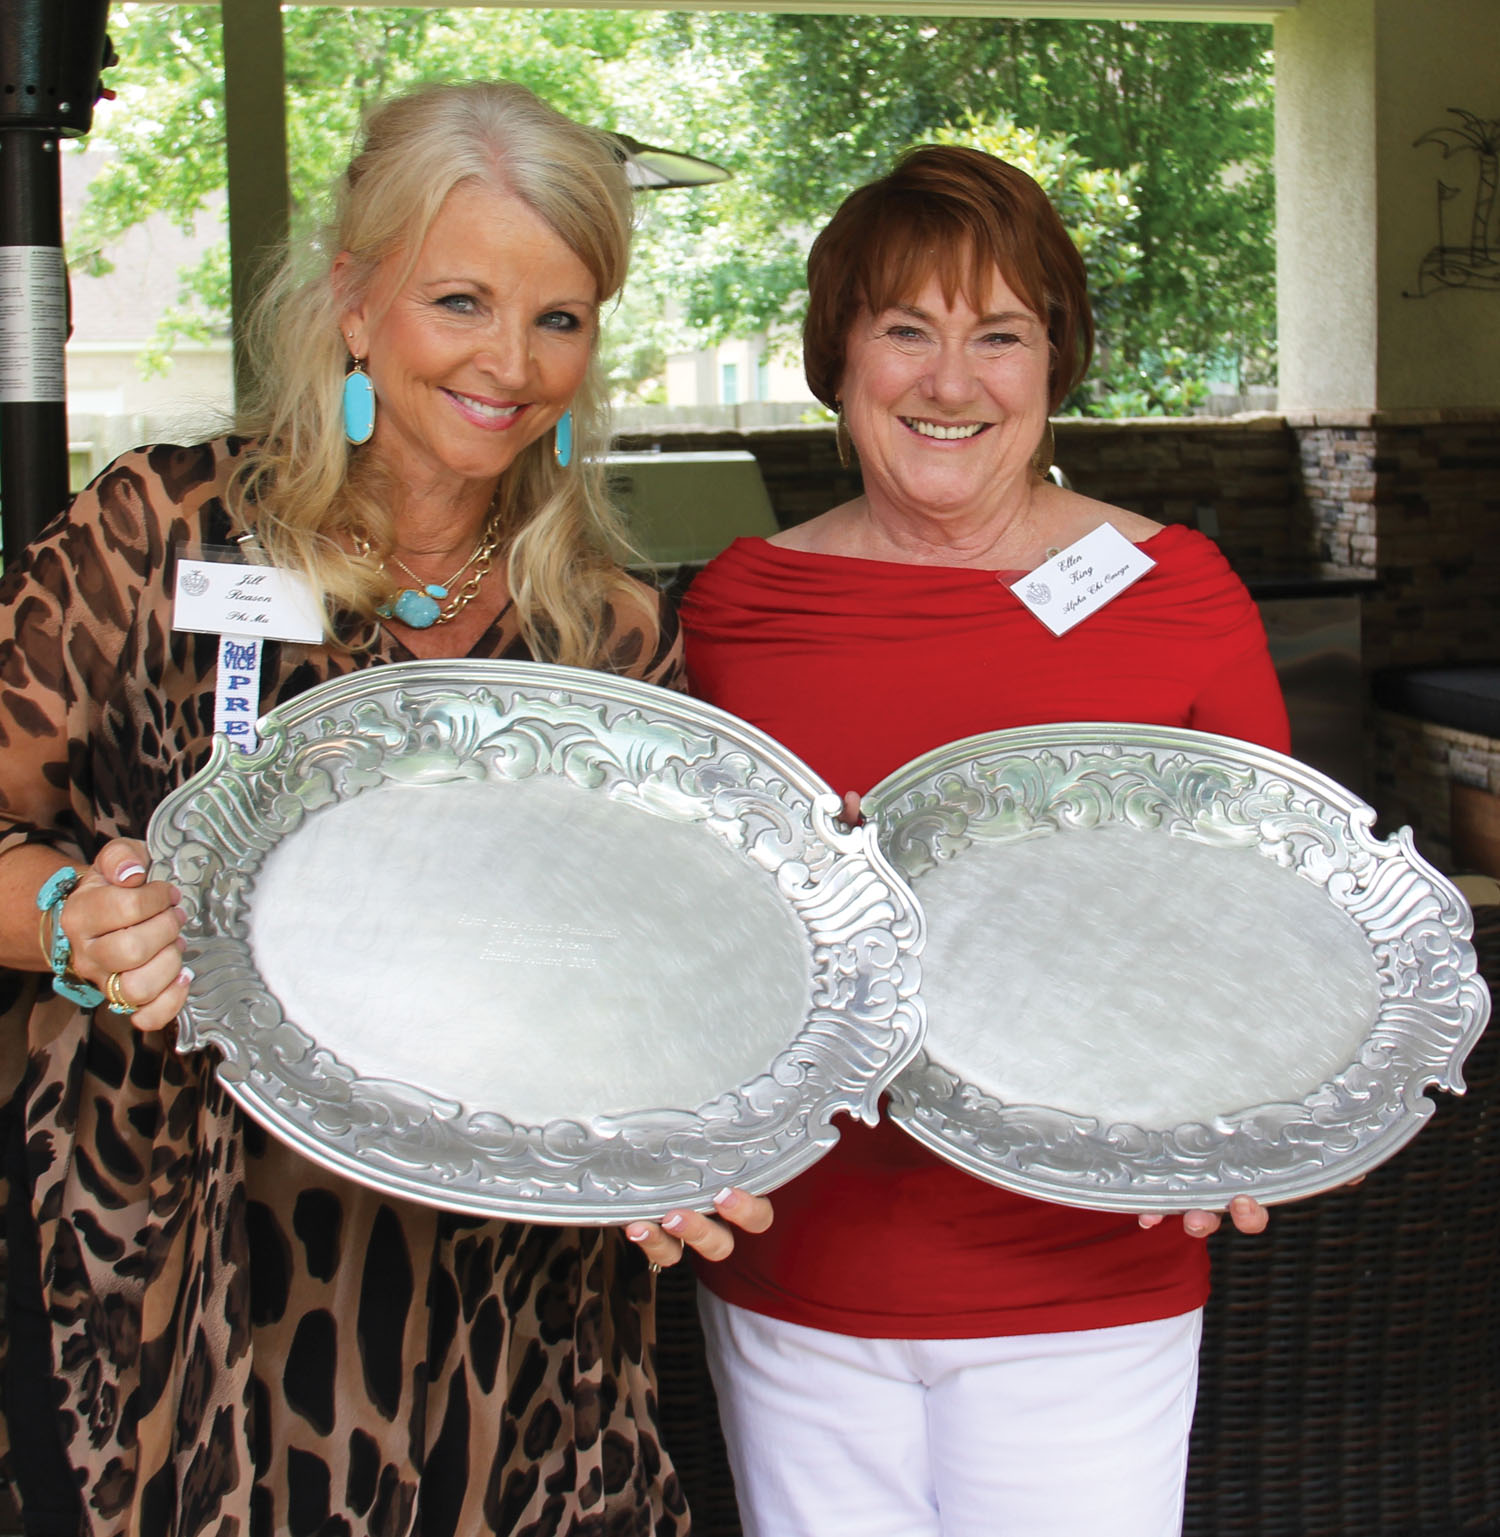 Citation Award winners Jill Reason, left, and Ellen King wear big smiles after receiving their Clear Lake Panhellenic awards at this year's May luncheon.